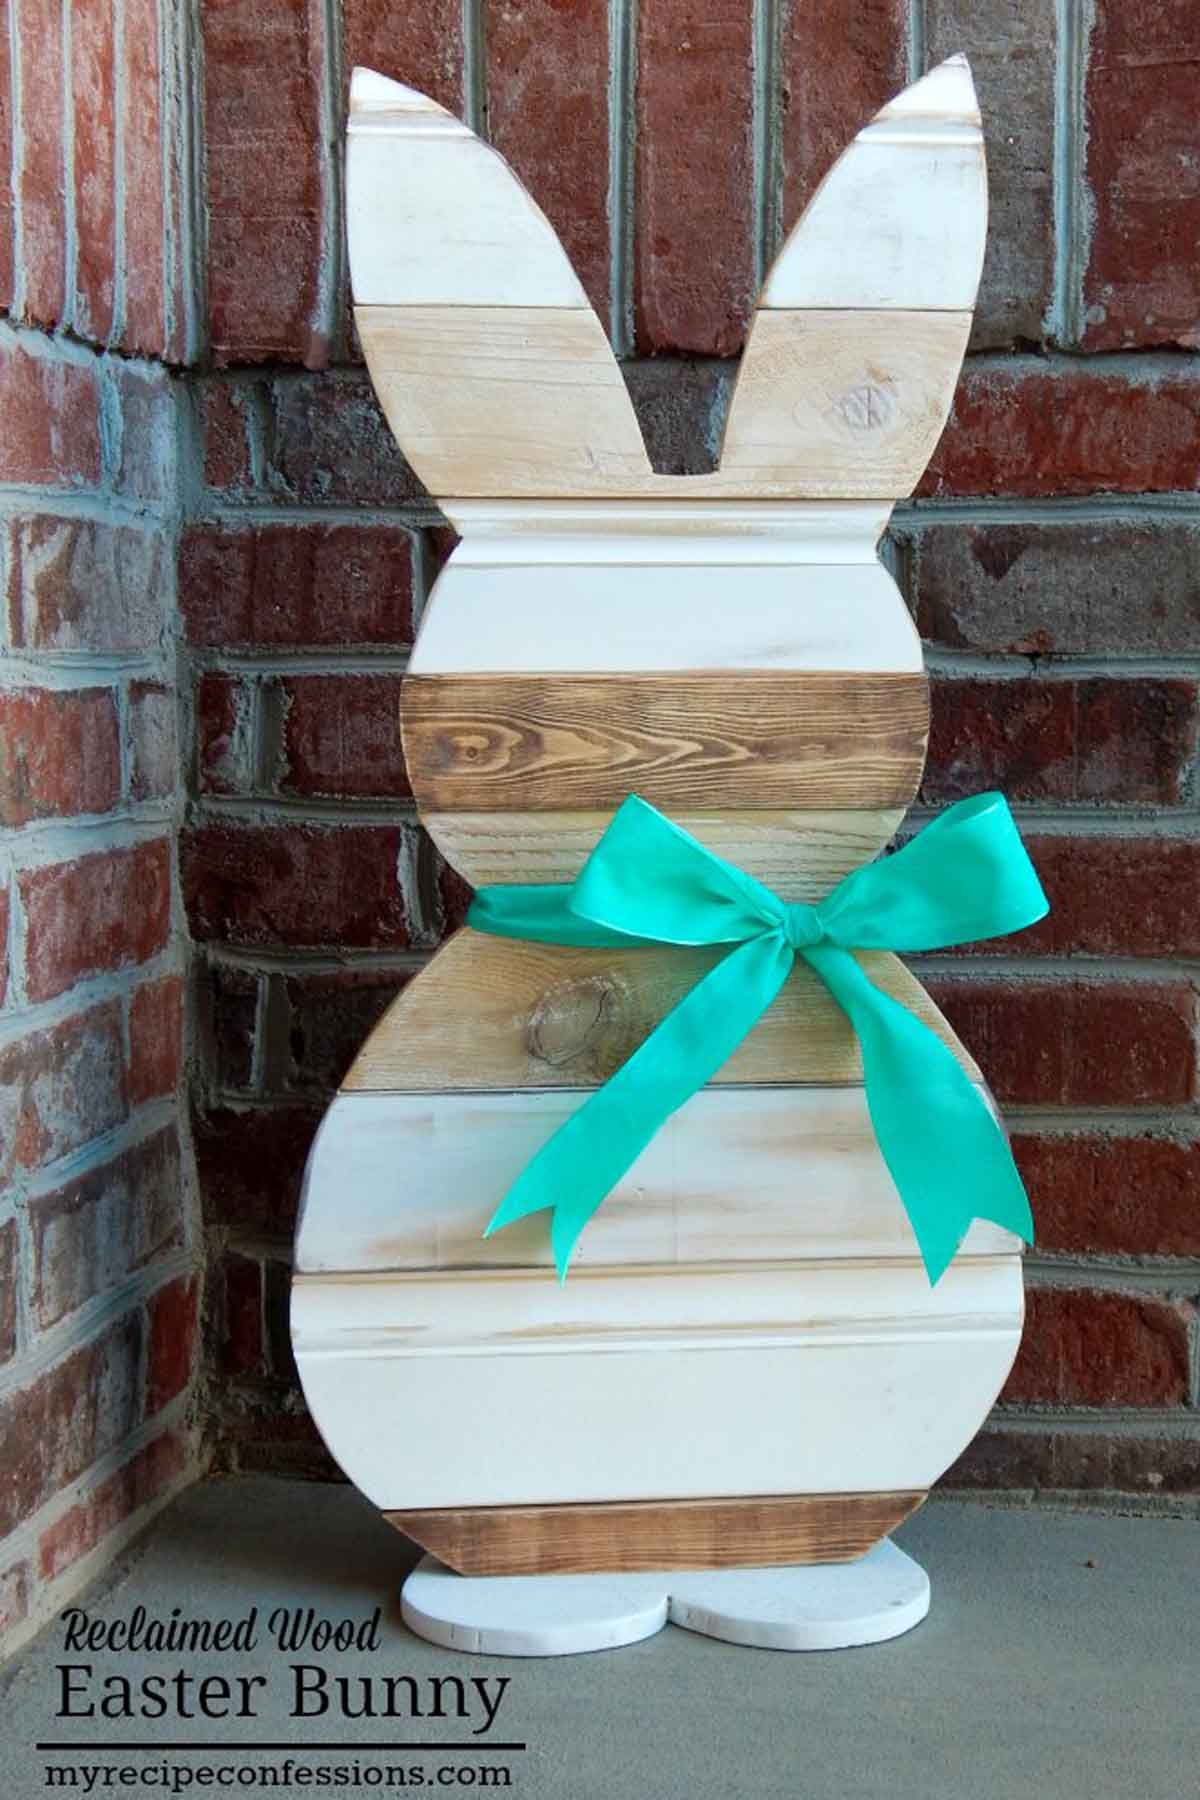 Easter DIY decorations - Reclaimed Wood Bunny